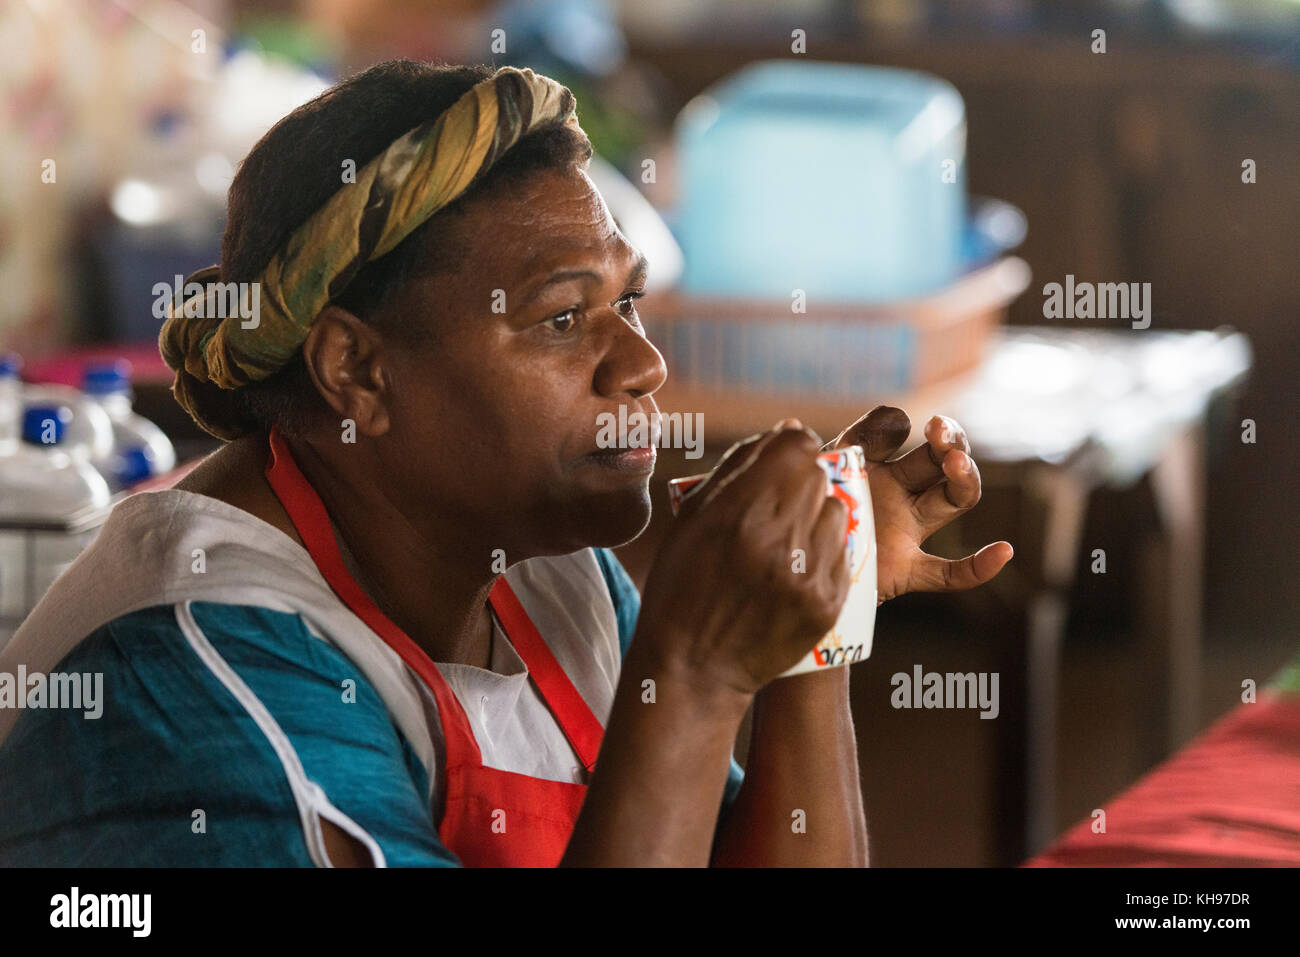 Joanna drinking a cup of hot water. Joanna works at Port Vila Fruit and Vegetable Market, Vanuatu. Stock Photo